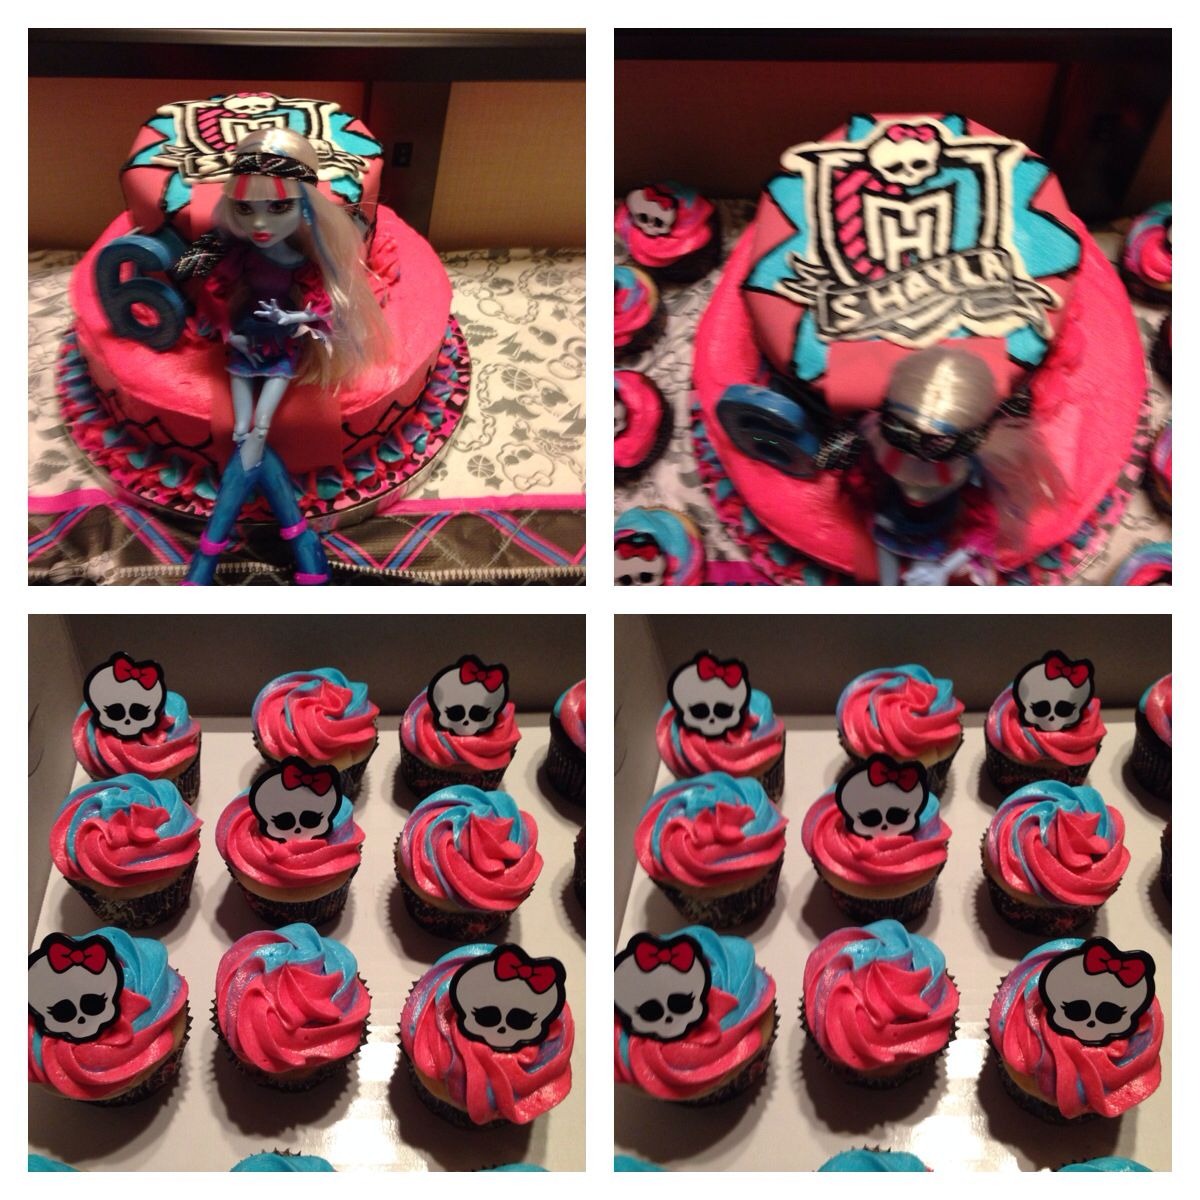 Pleasant Monster High Birthday Cake Cupcakes Monster High Birthday Cake Funny Birthday Cards Online Alyptdamsfinfo